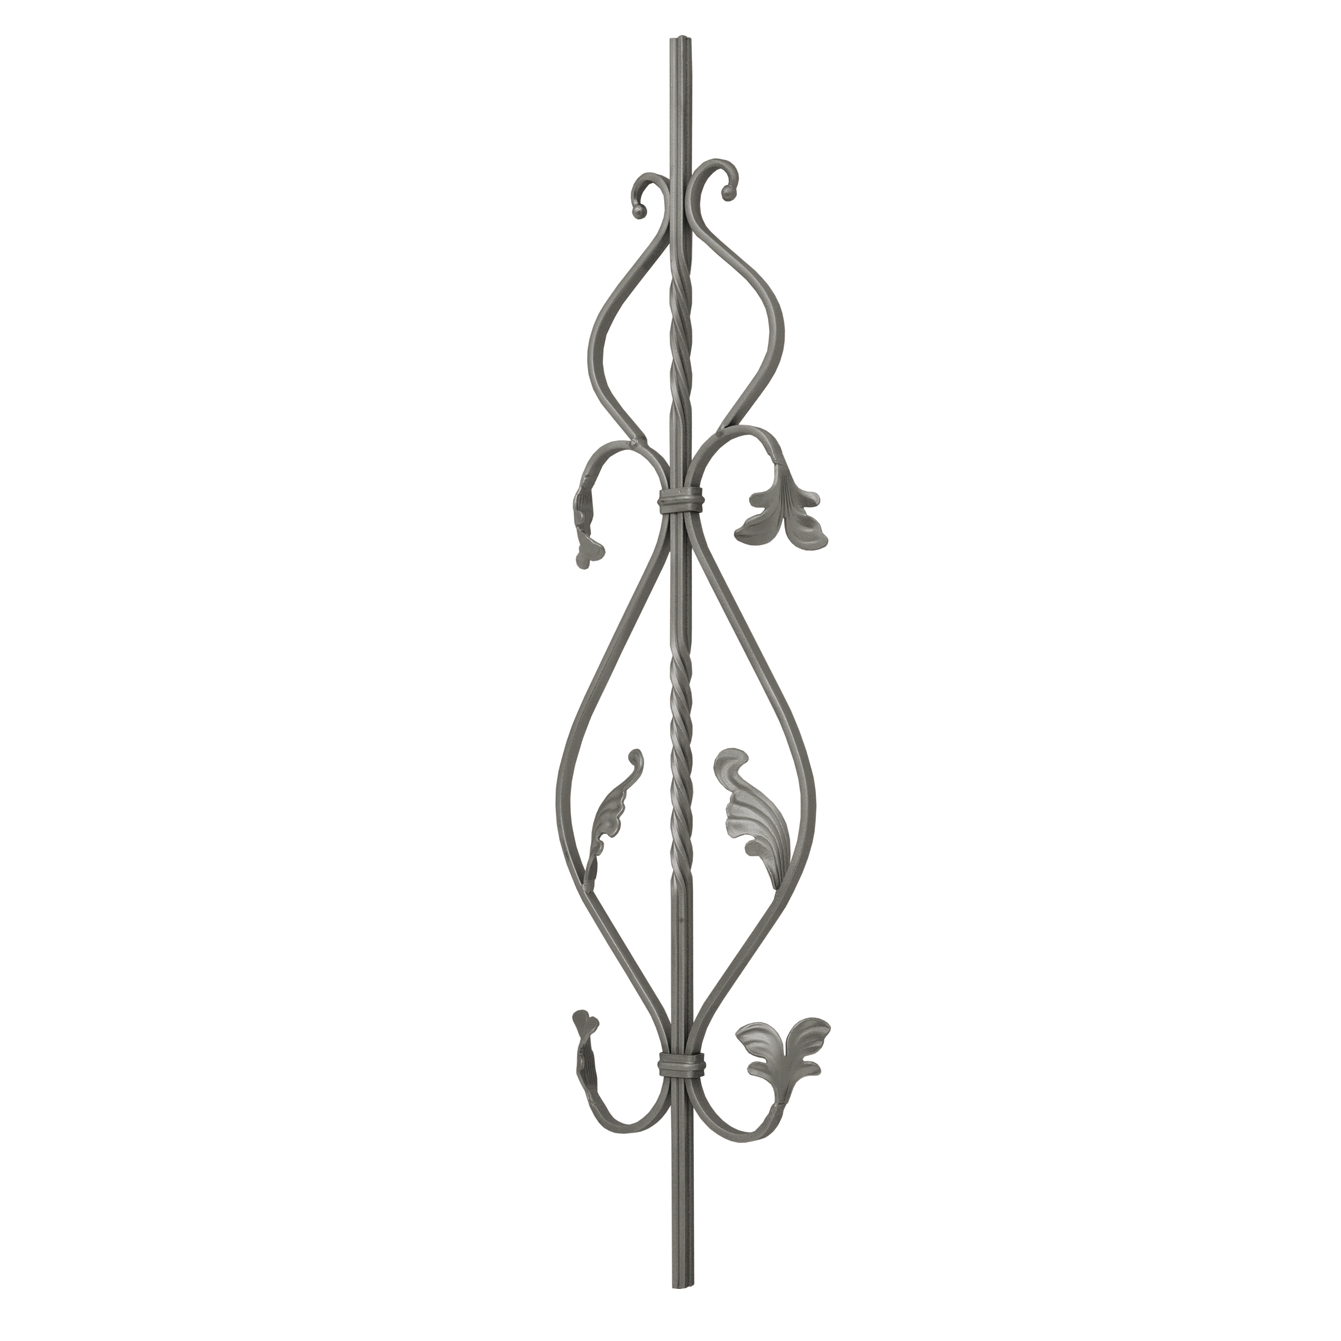 """1/2"""" sq. Forged Steel Panel with Various Scrolls and Leaves, 35-7/16"""" Tall"""